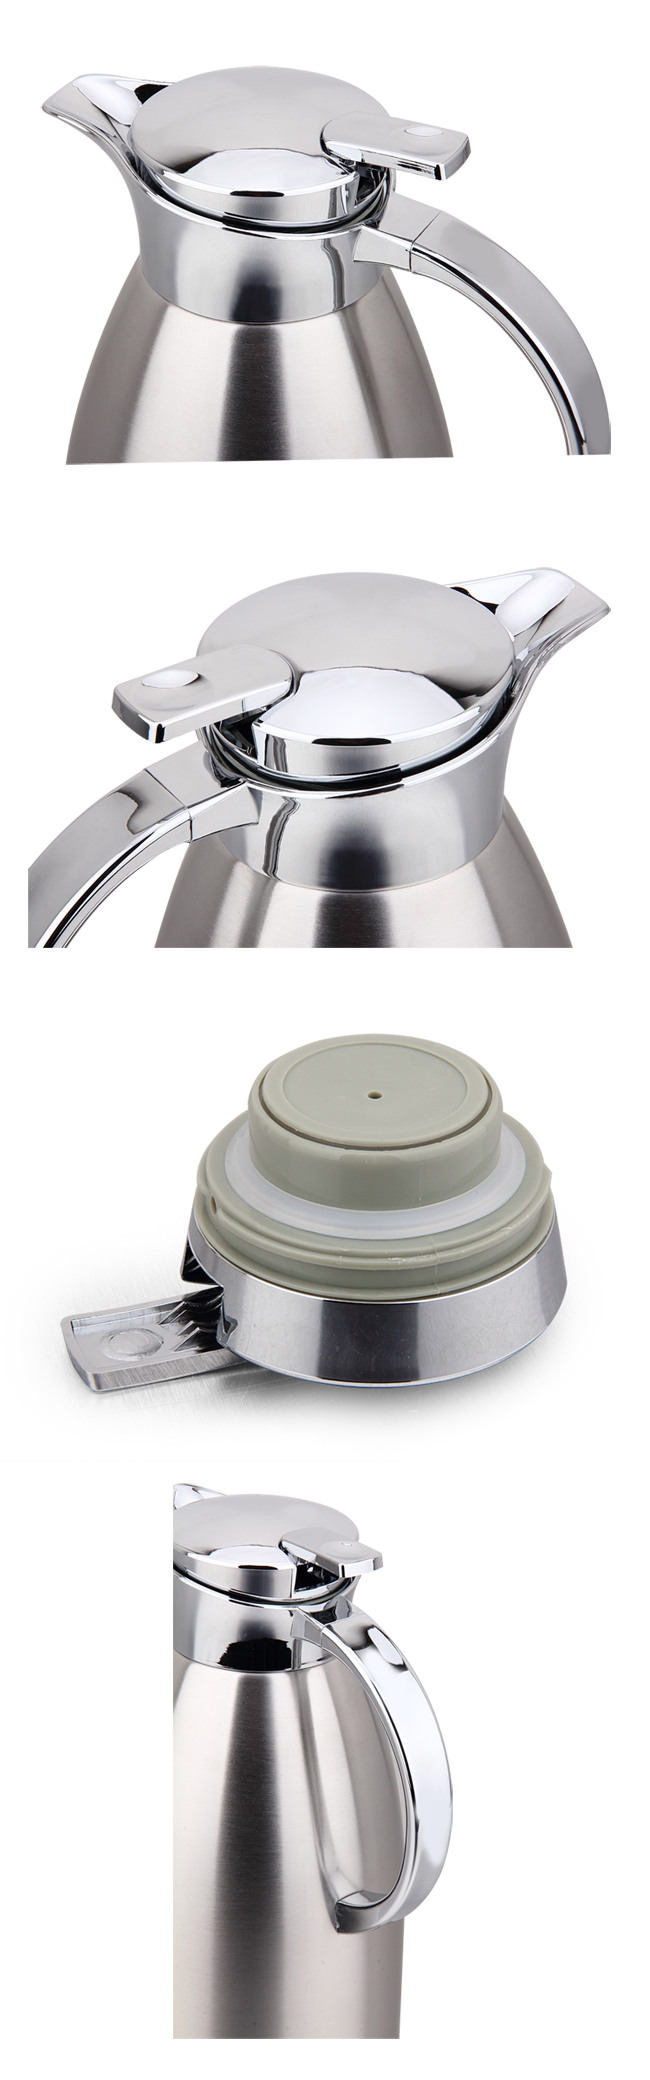 Penguin Shape Head 201 Stainless Steel Vacuum Coffee Pot & Tea Kettle